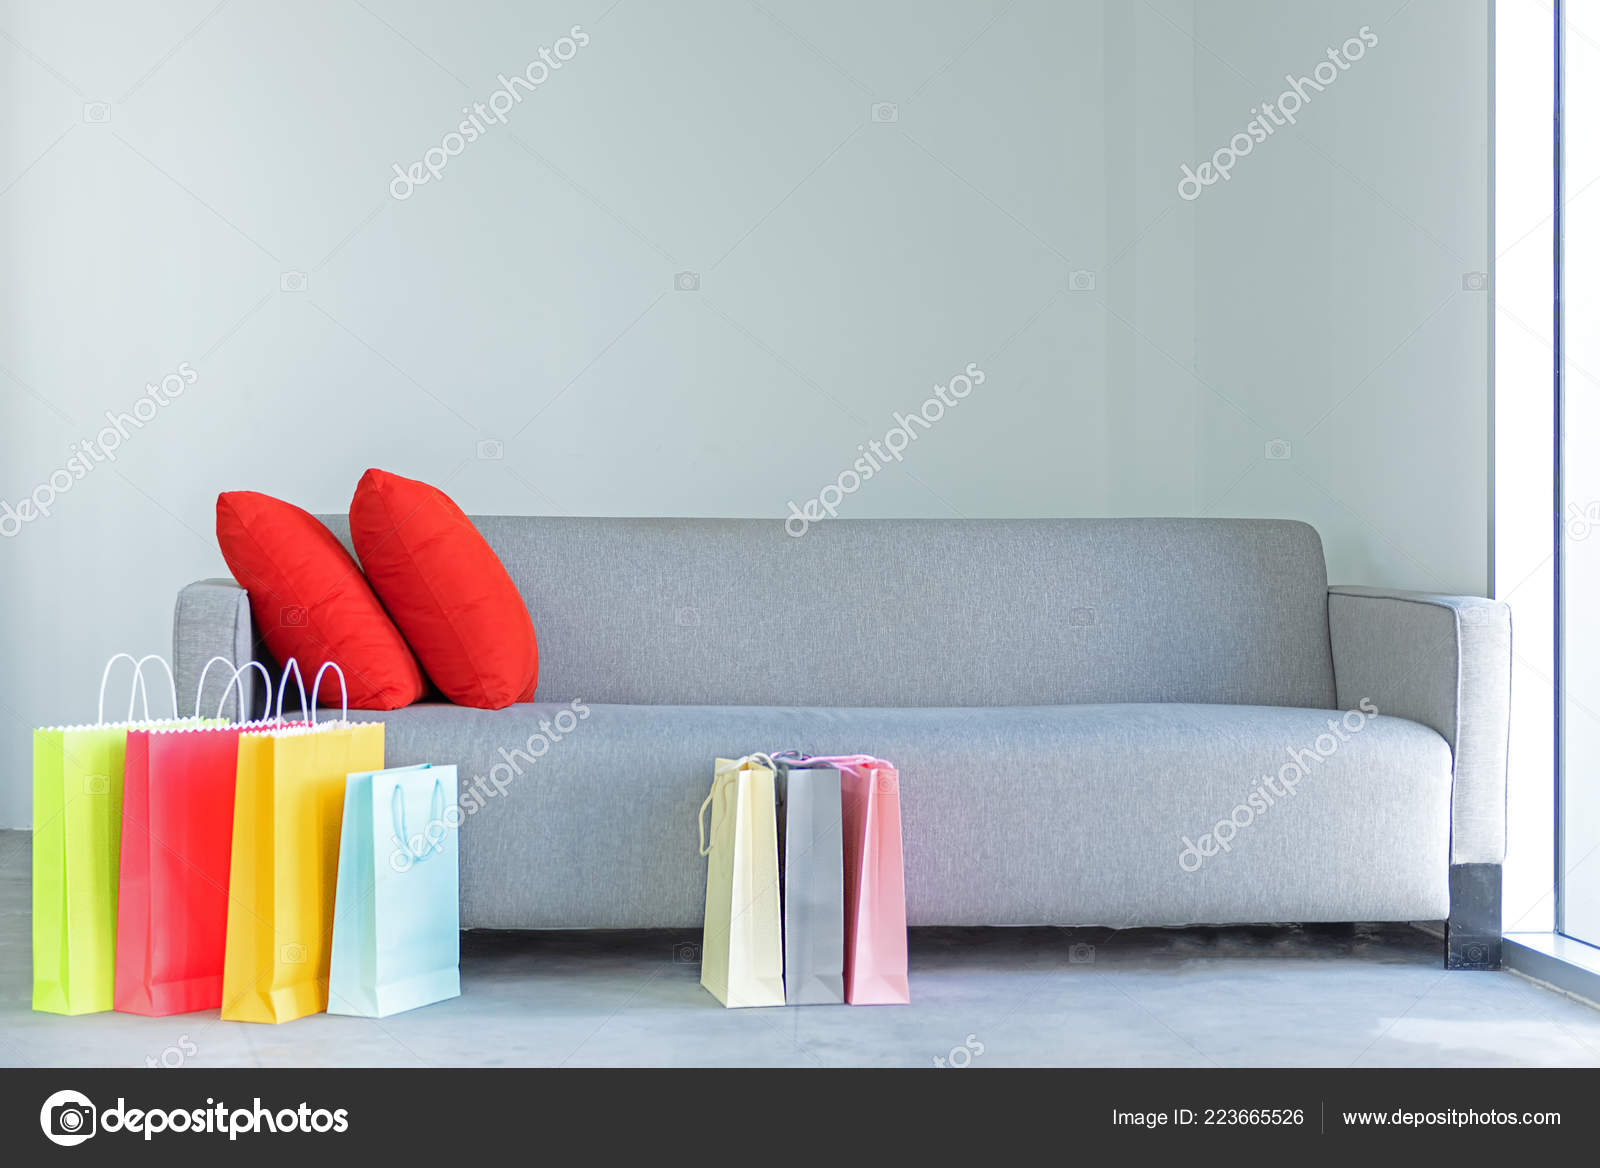 Sofa For Living Room Online Shopping Online Colorful Shopping Bags Red Pillow Sofa Living Room